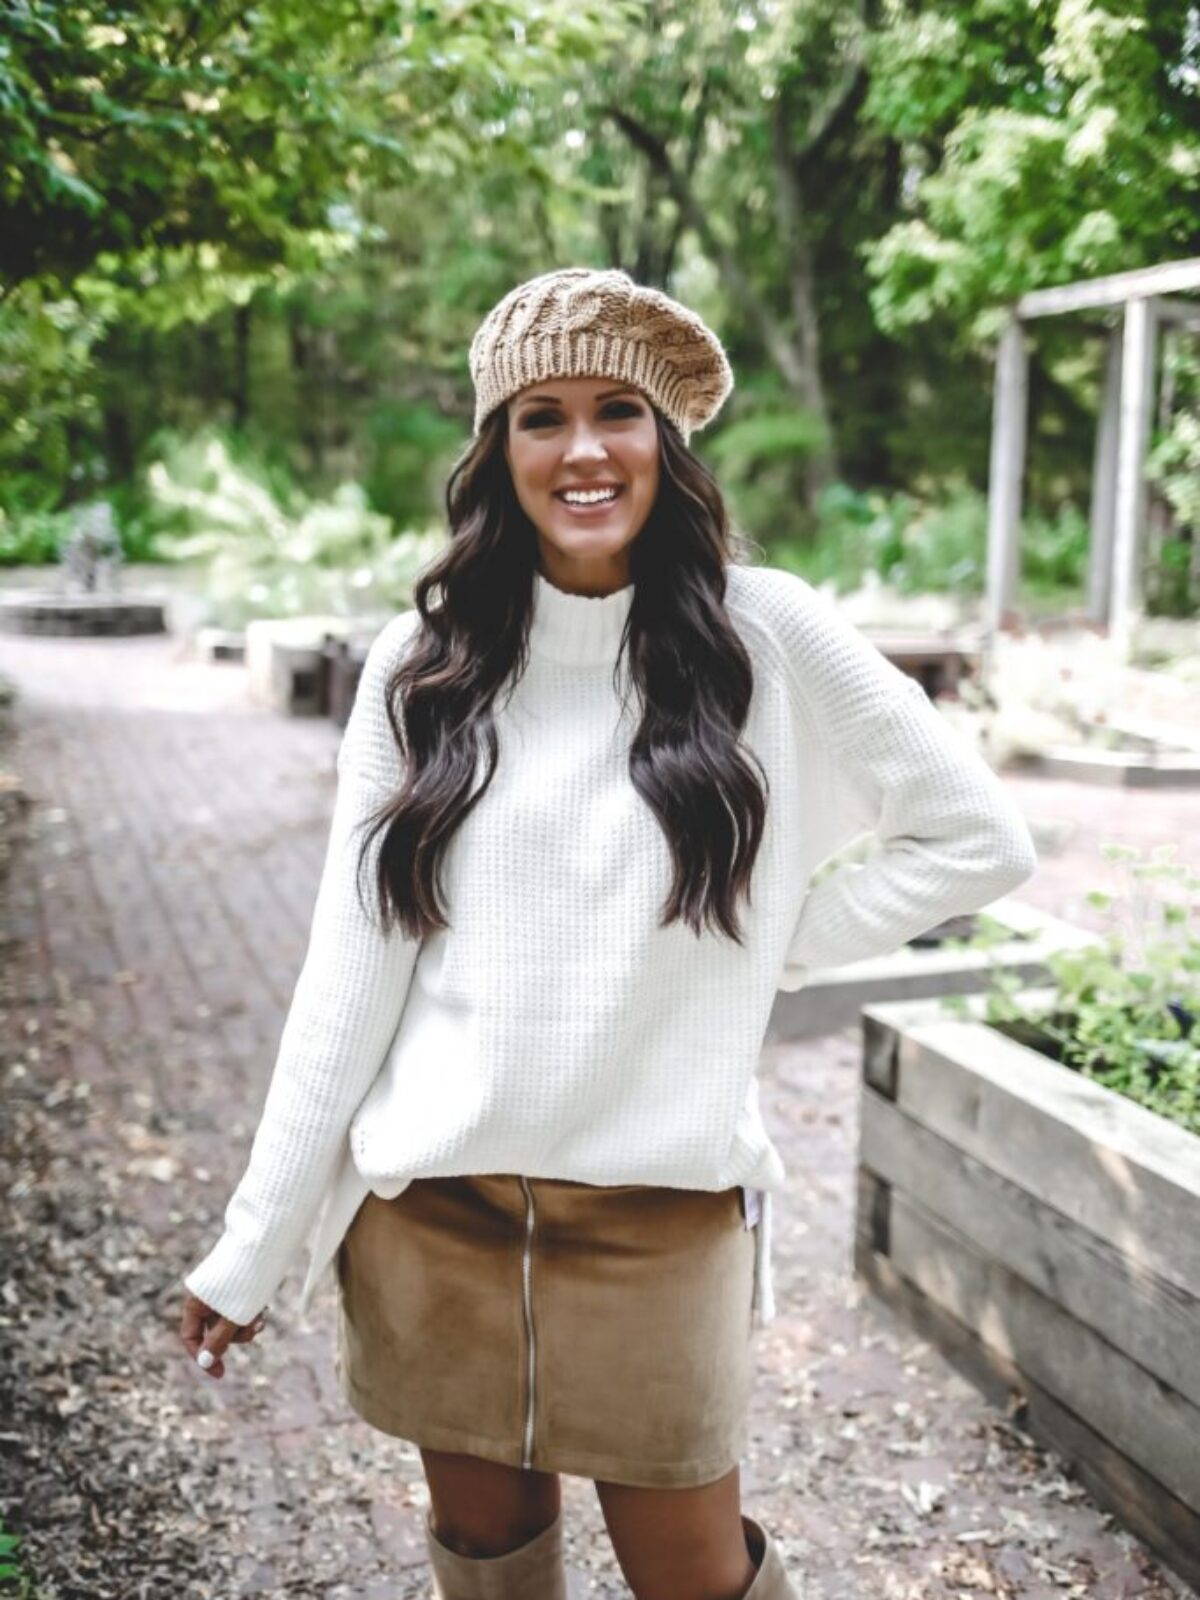 columbus day sales target sale cordurory skirt oversized sweater cable knit beret fall outfit knee high boots